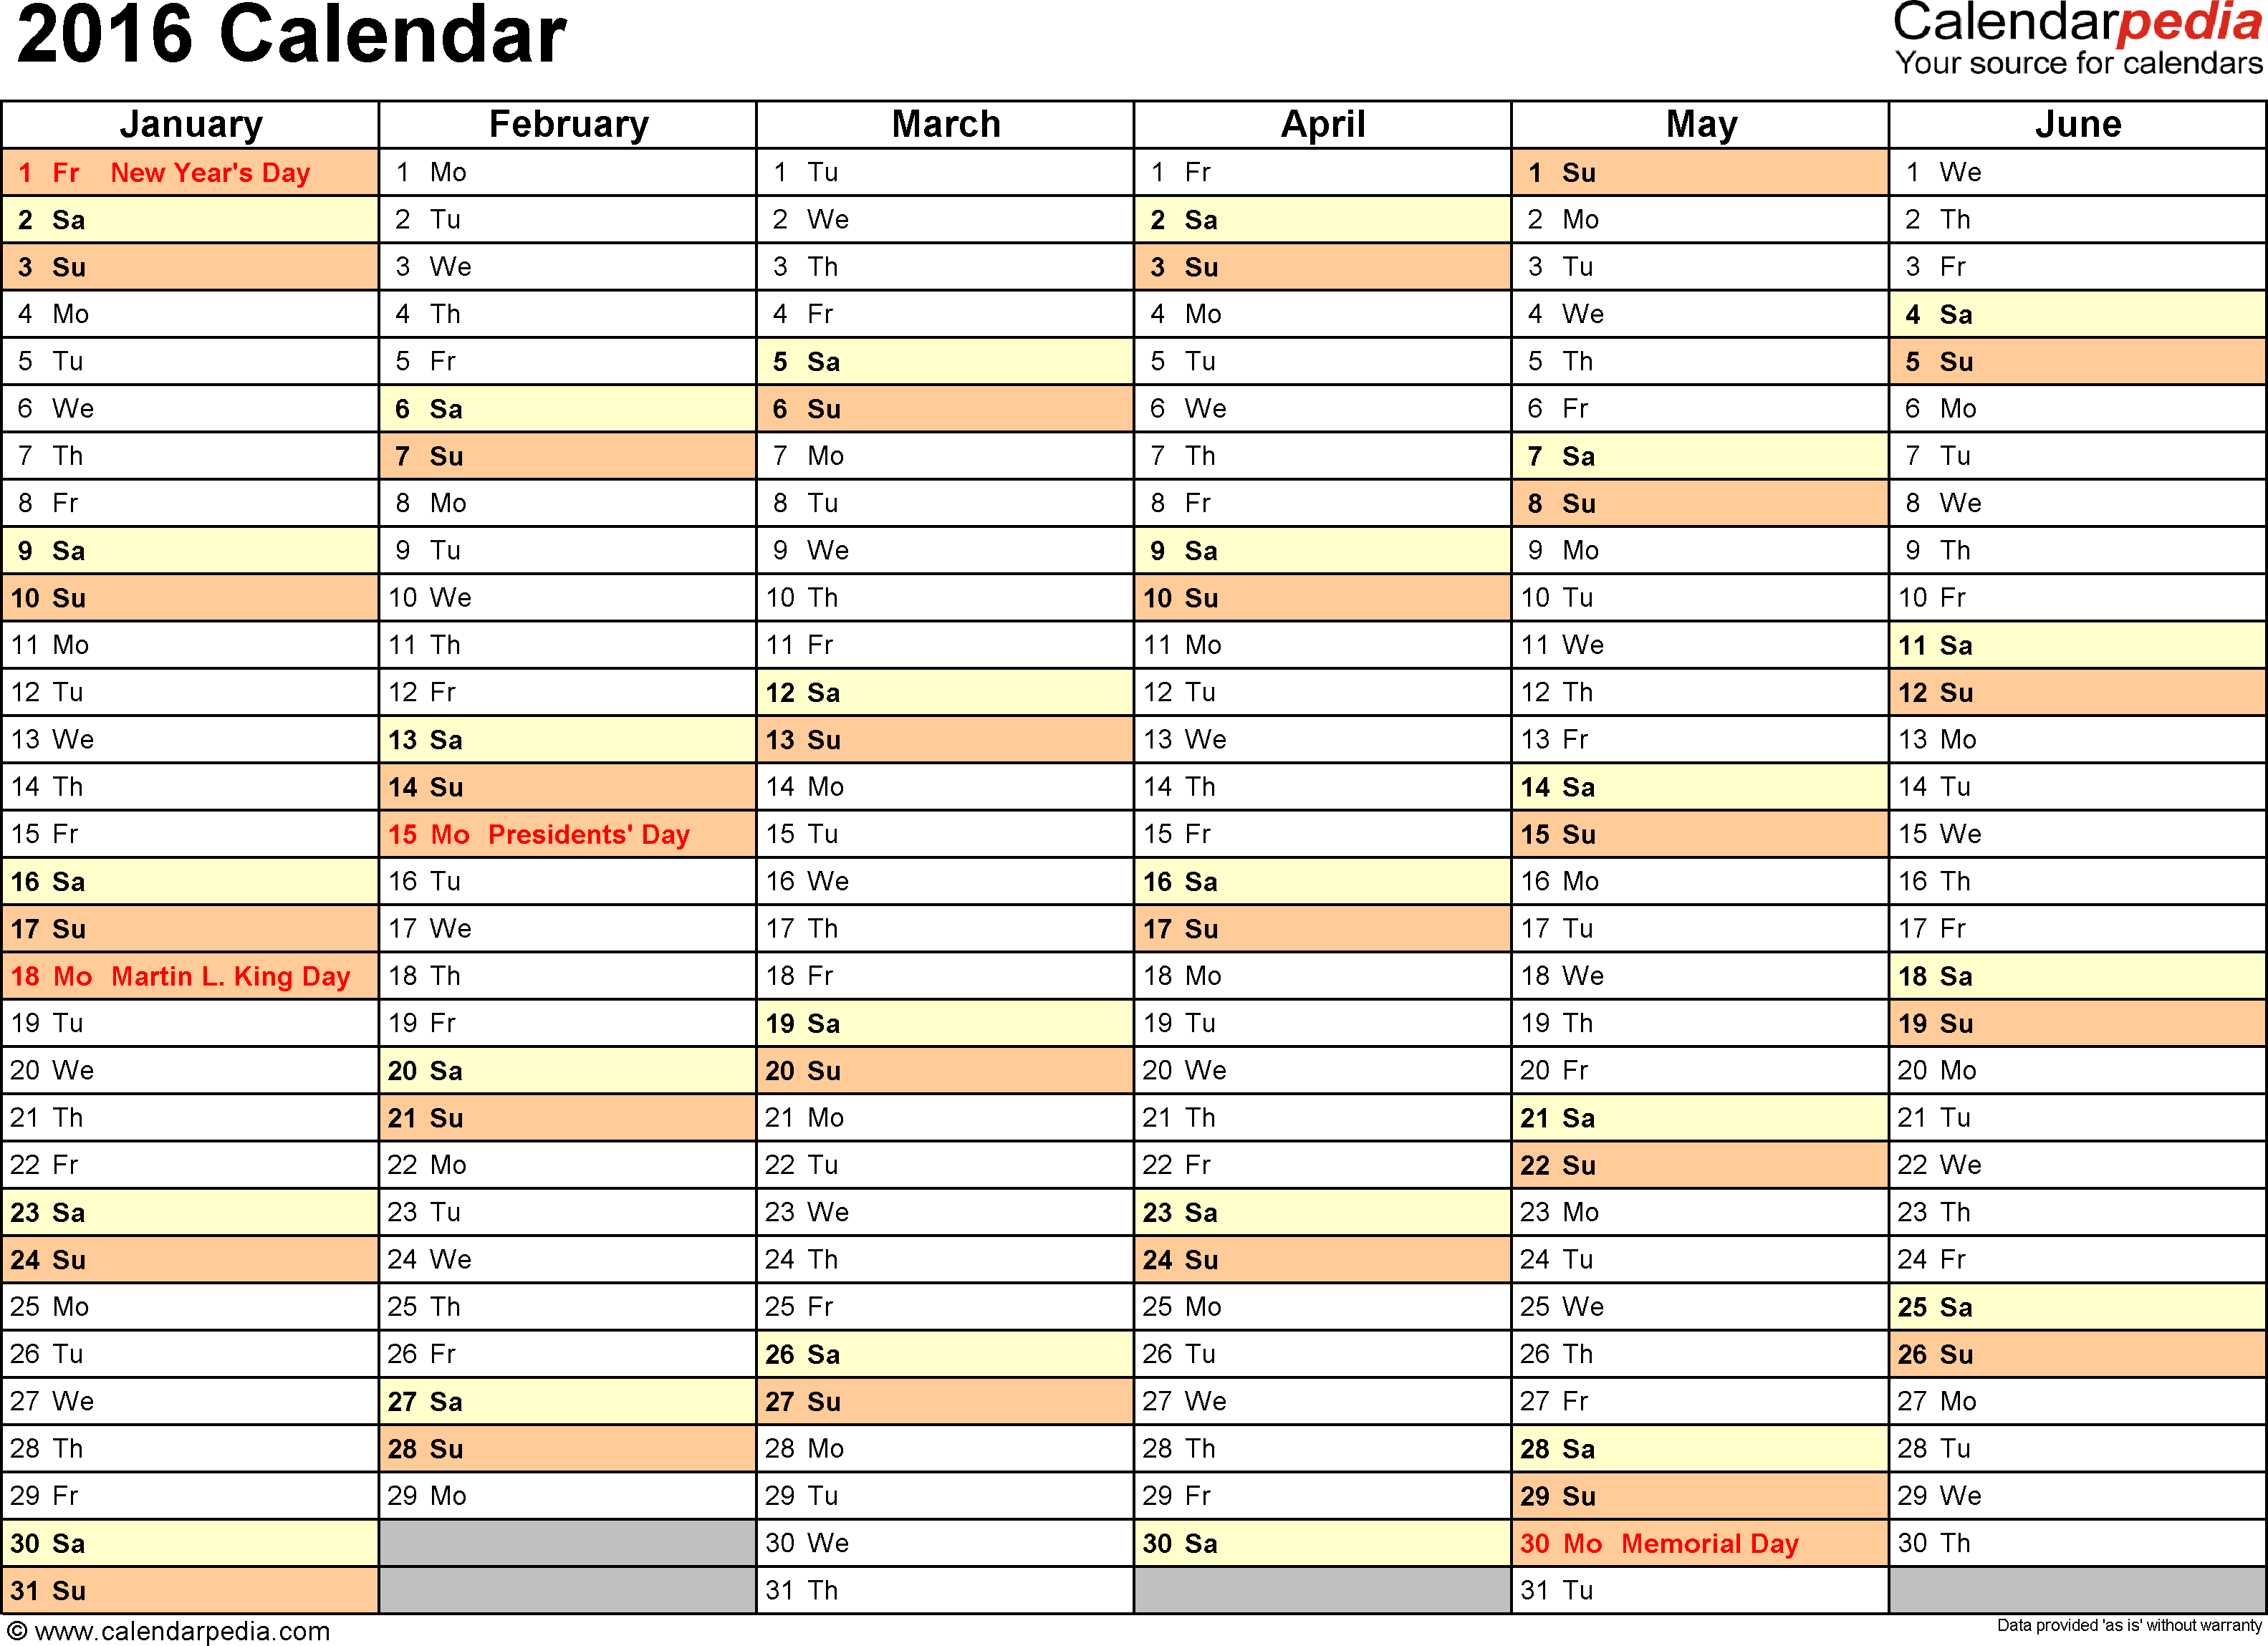 Ediblewildsus  Outstanding  Calendar  Download  Free Printable Excel Templates Xls With Marvelous Template   Calendar For Excel Months Horizontally  Pages Landscape Orientation With Easy On The Eye Excel Send Email Also Greater Than But Less Than Excel In Addition String Function Excel And Excel Boat Prices As Well As Work Schedule Excel Template Additionally Excel Add One Month From Calendarpediacom With Ediblewildsus  Marvelous  Calendar  Download  Free Printable Excel Templates Xls With Easy On The Eye Template   Calendar For Excel Months Horizontally  Pages Landscape Orientation And Outstanding Excel Send Email Also Greater Than But Less Than Excel In Addition String Function Excel From Calendarpediacom